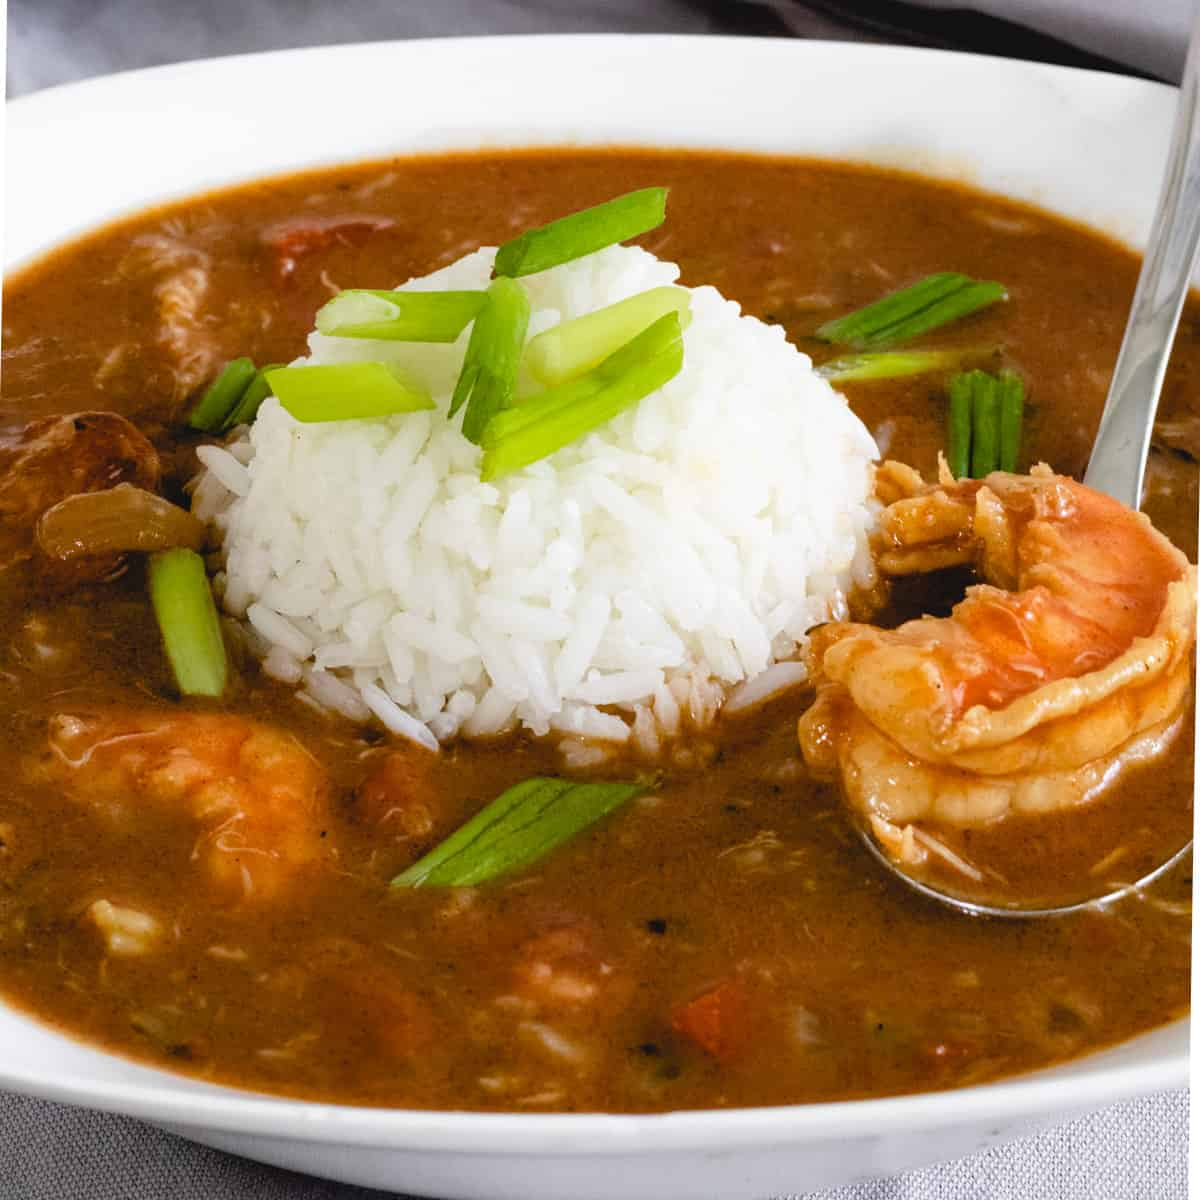 Bowl of louisiana gumbo with a ball of rice in the middle. Spoon is scooping up a piece of shrimp.